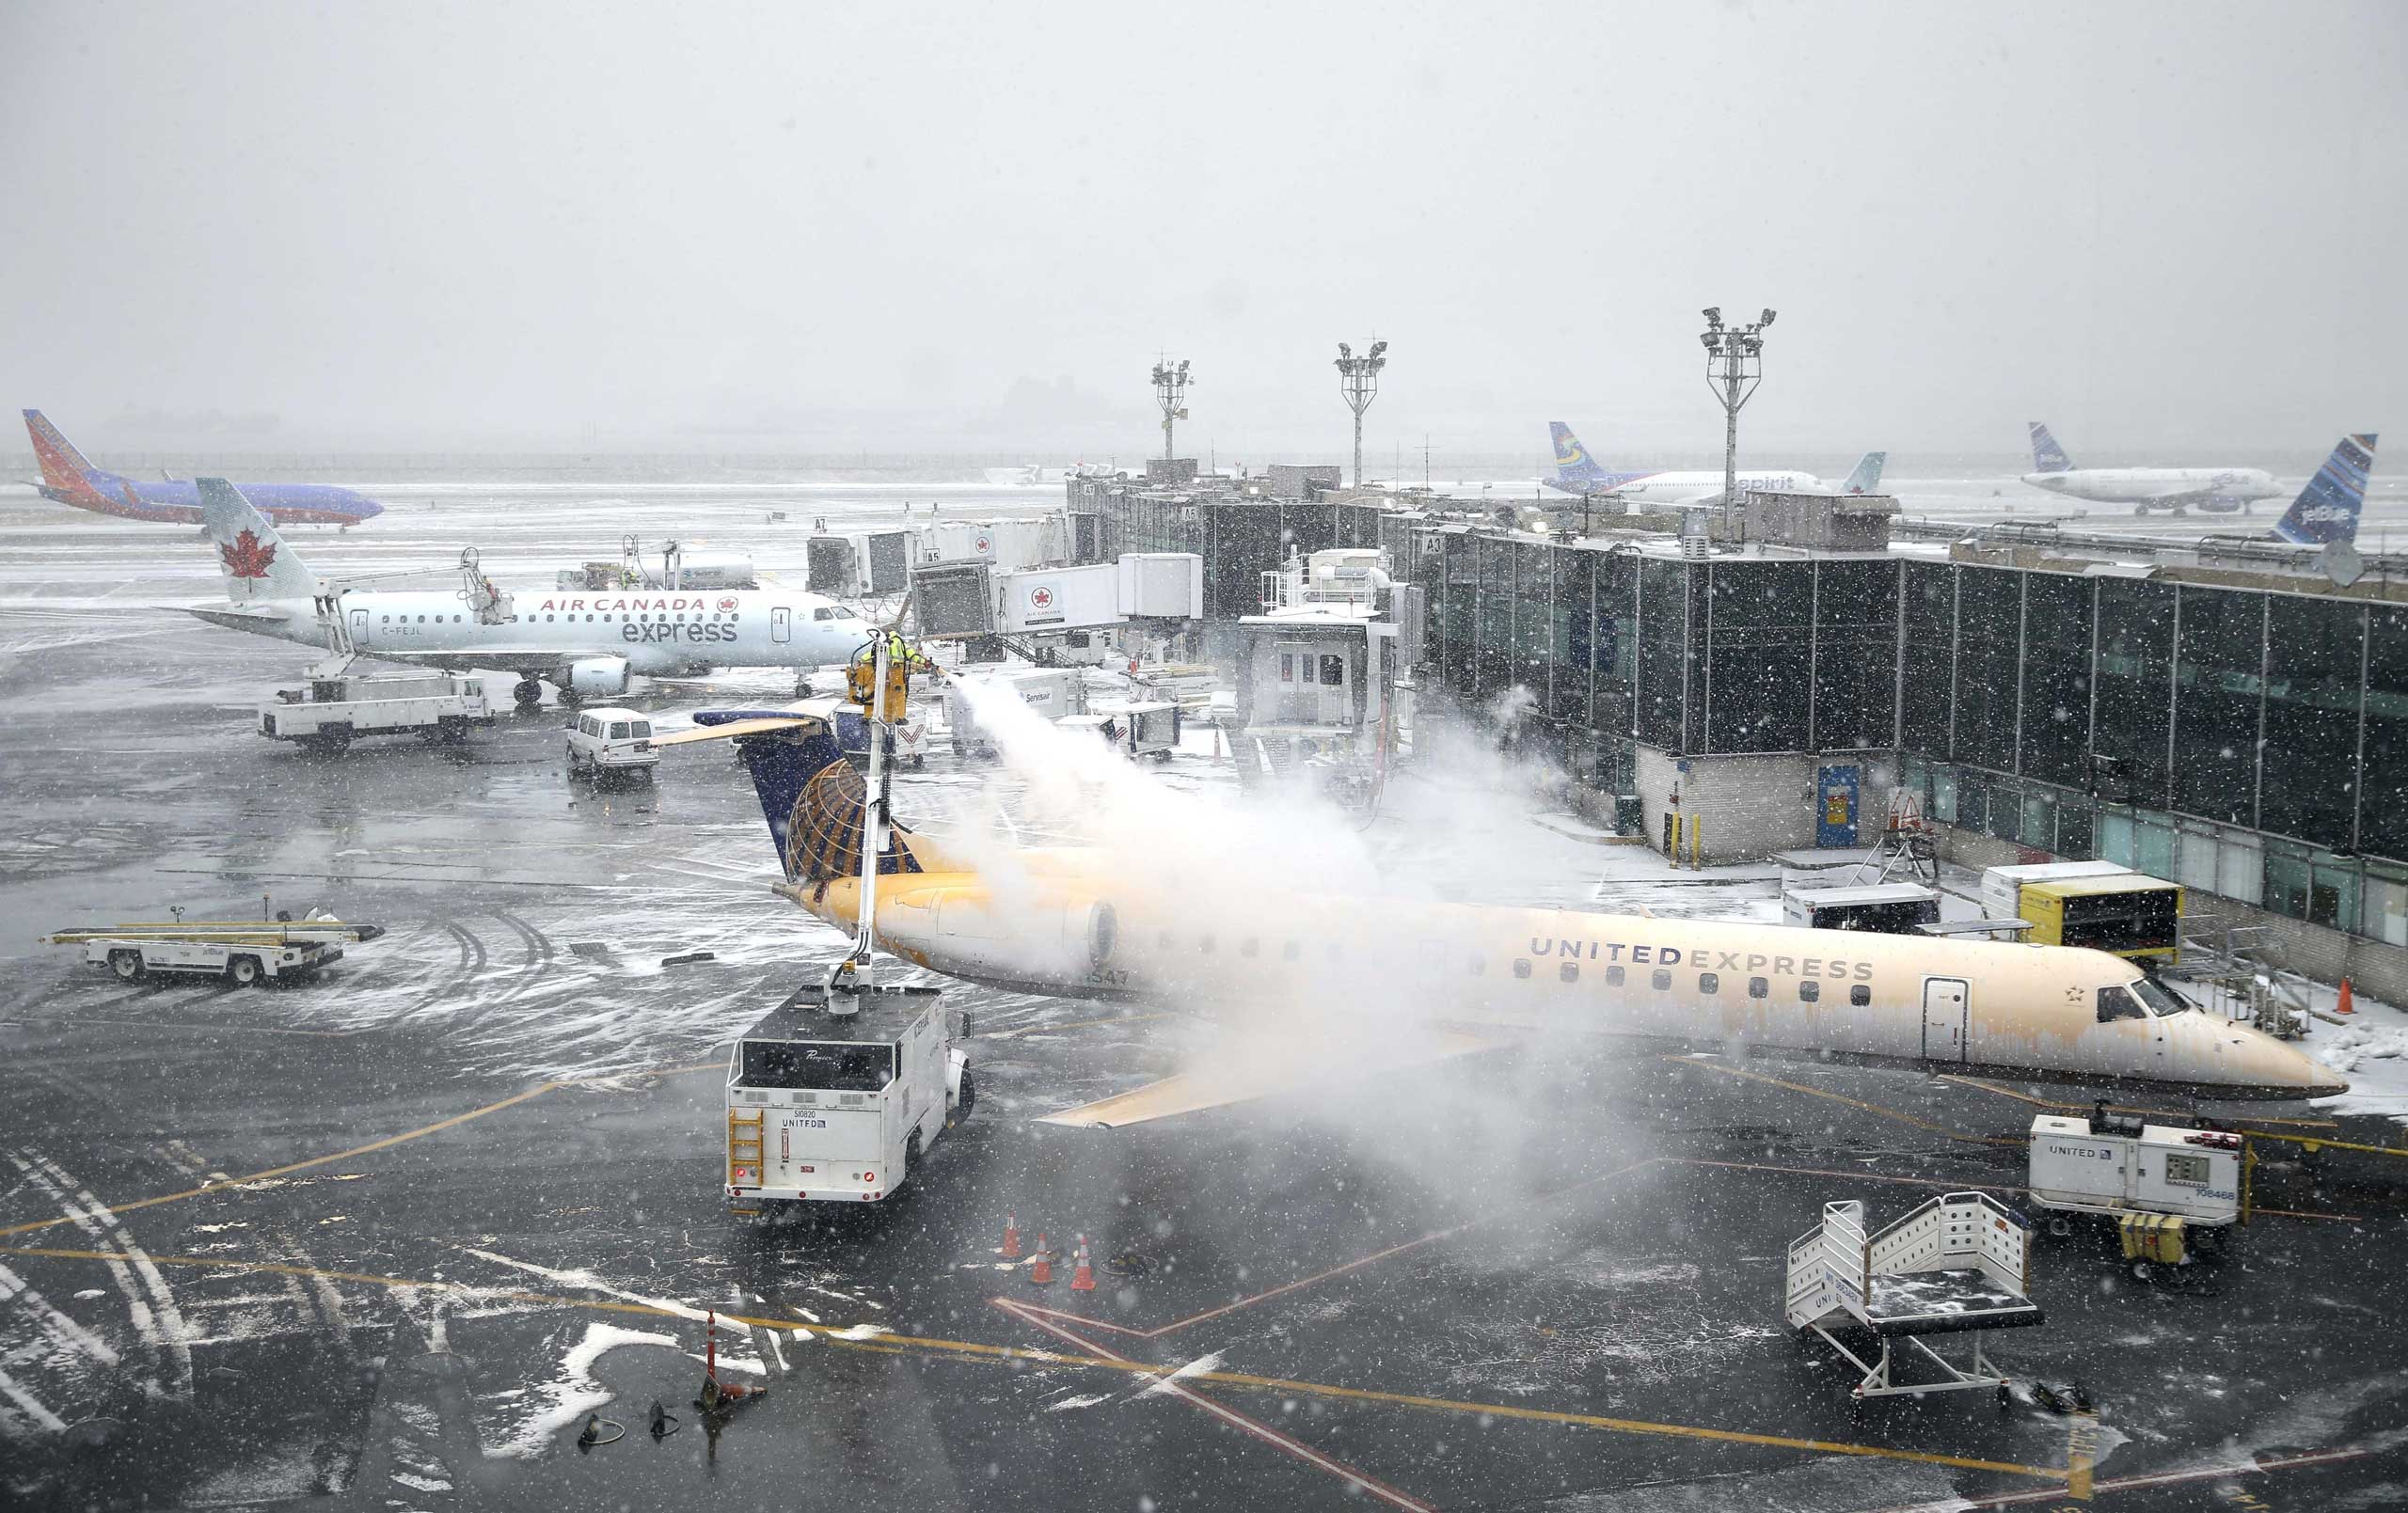 A plane is de-iced at LaGuardia Airport in New York City on Jan. 26, 2015.